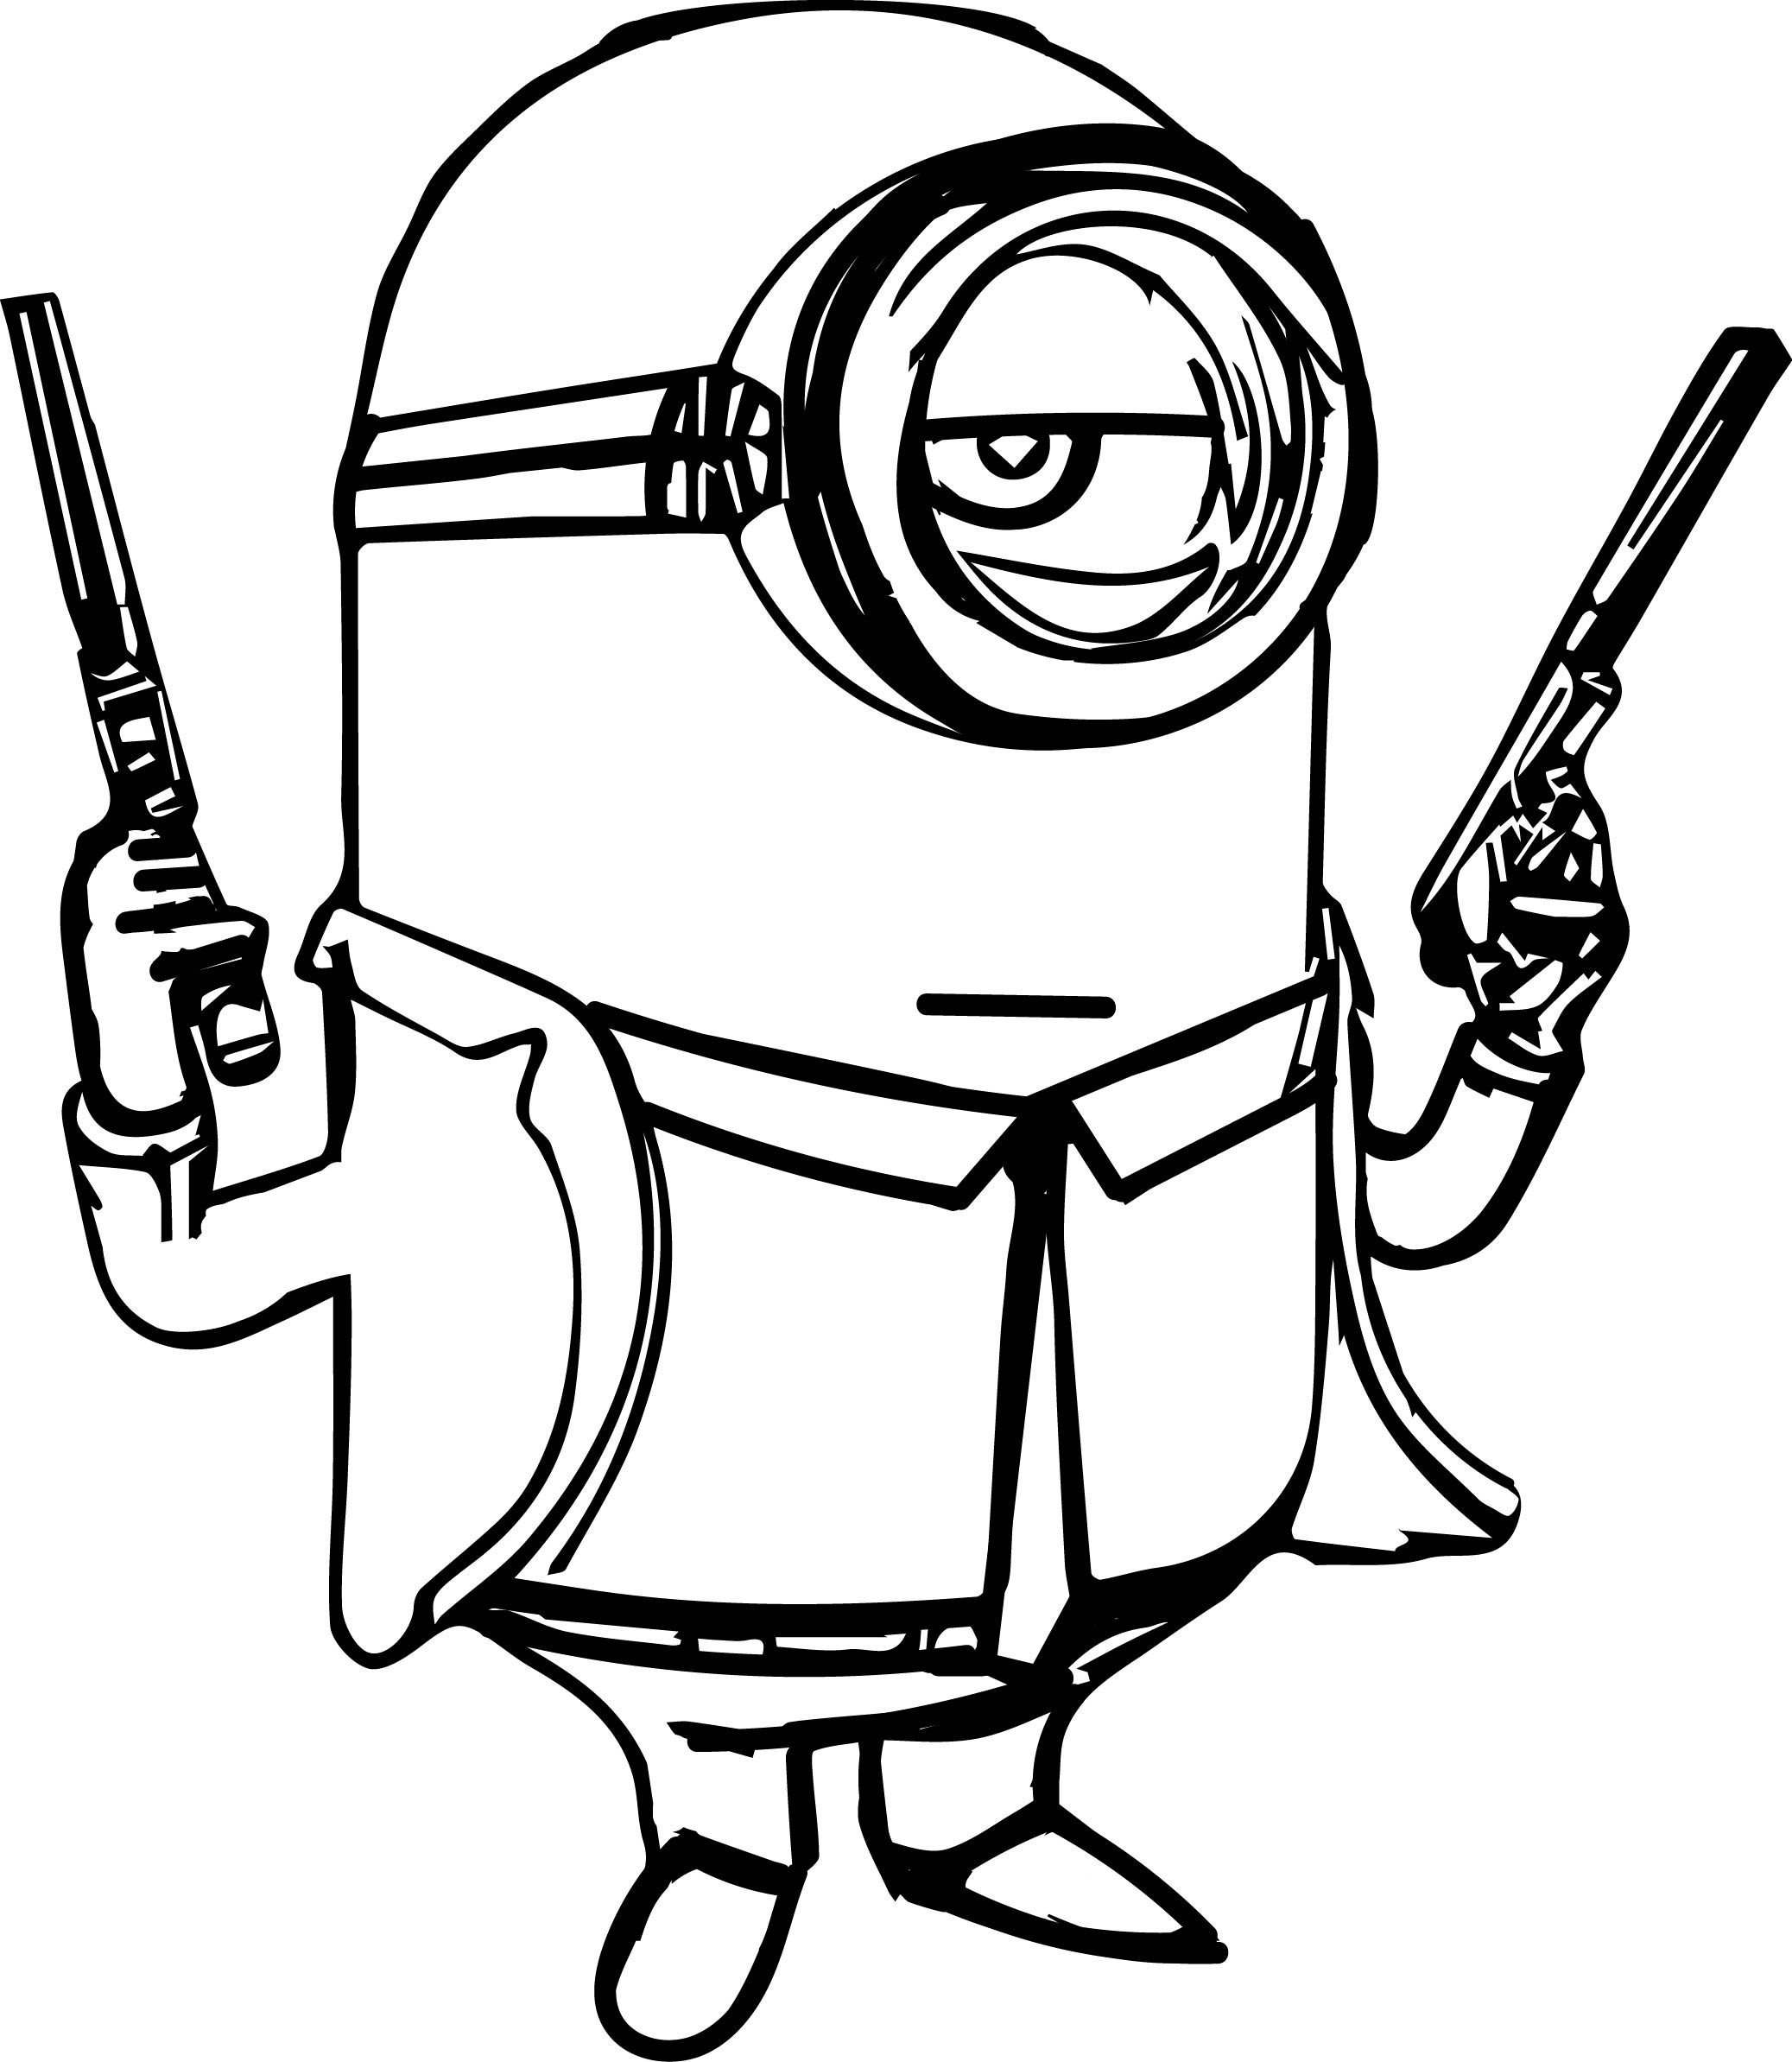 Nerf Gun Coloring Pages At Getcolorings